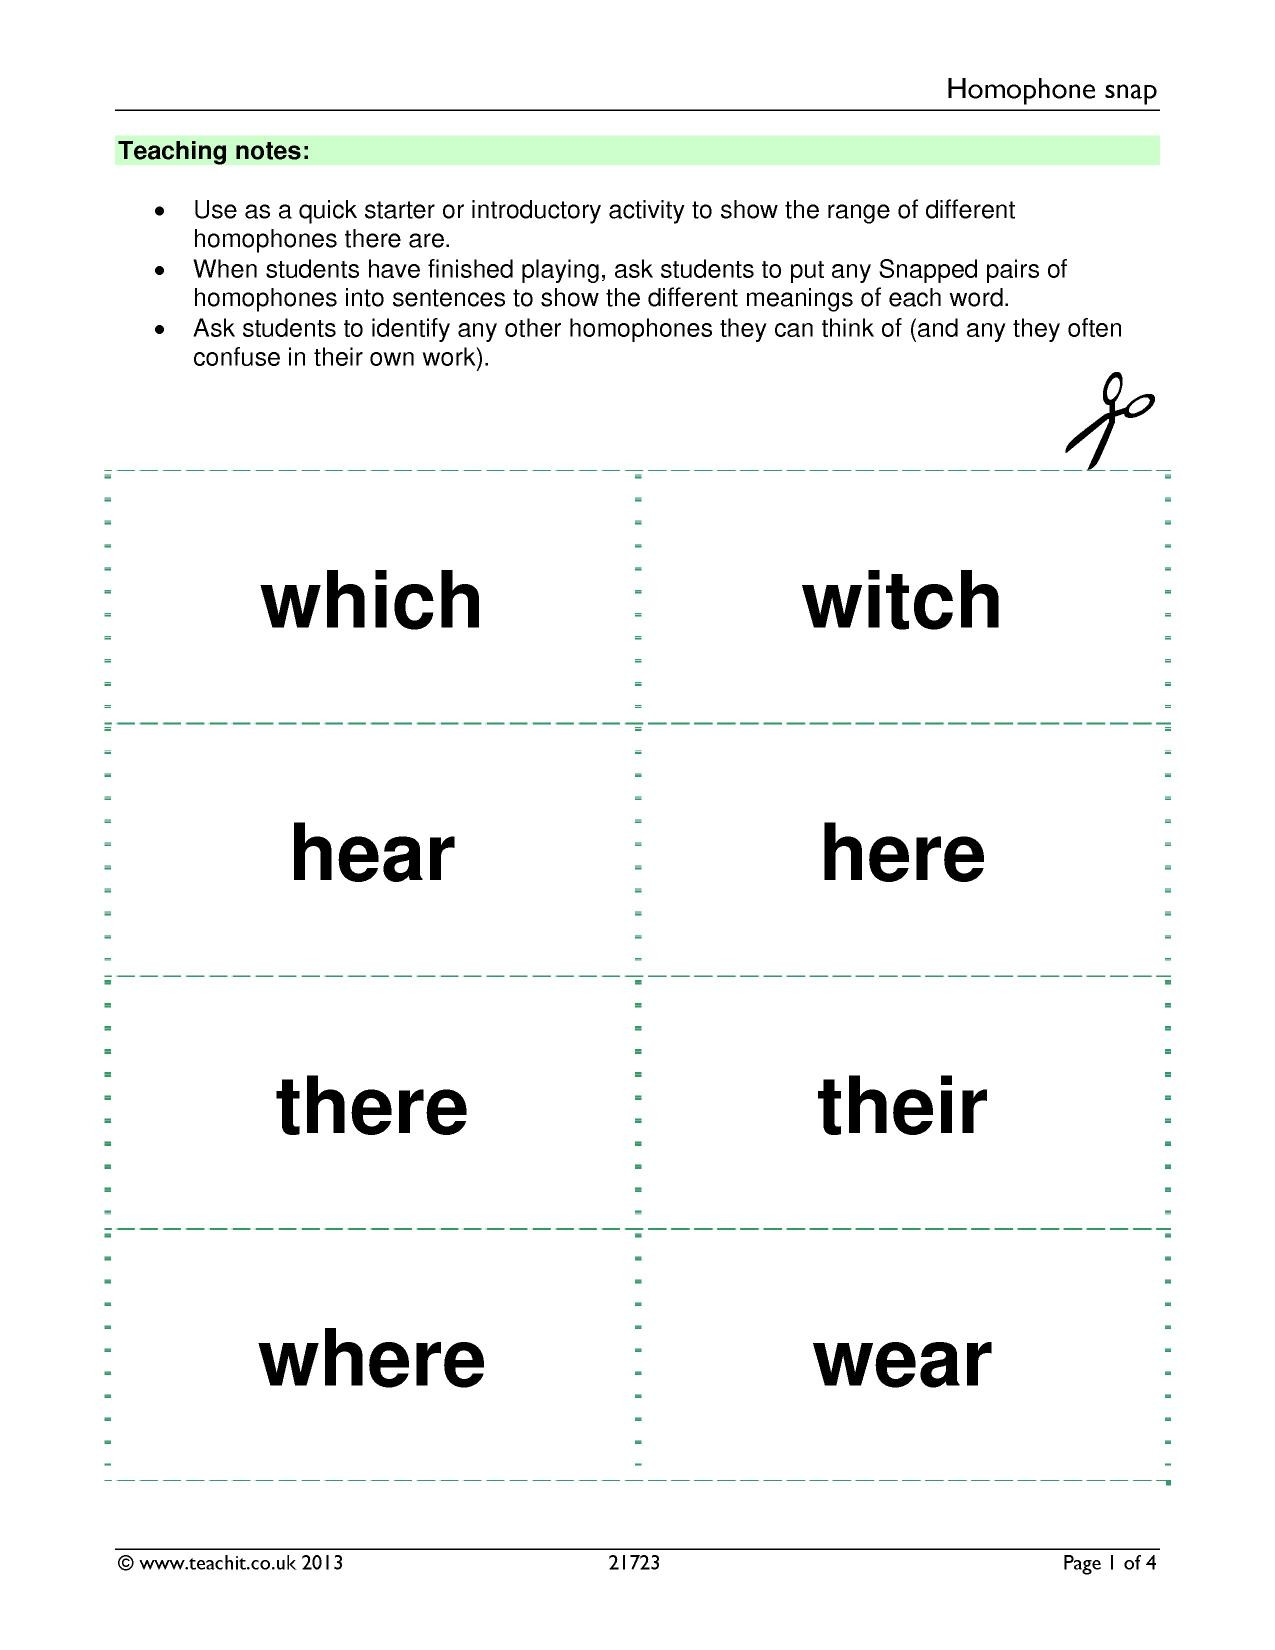 Free Printable Homophone Worksheets Free Printable Homophone Worksheet